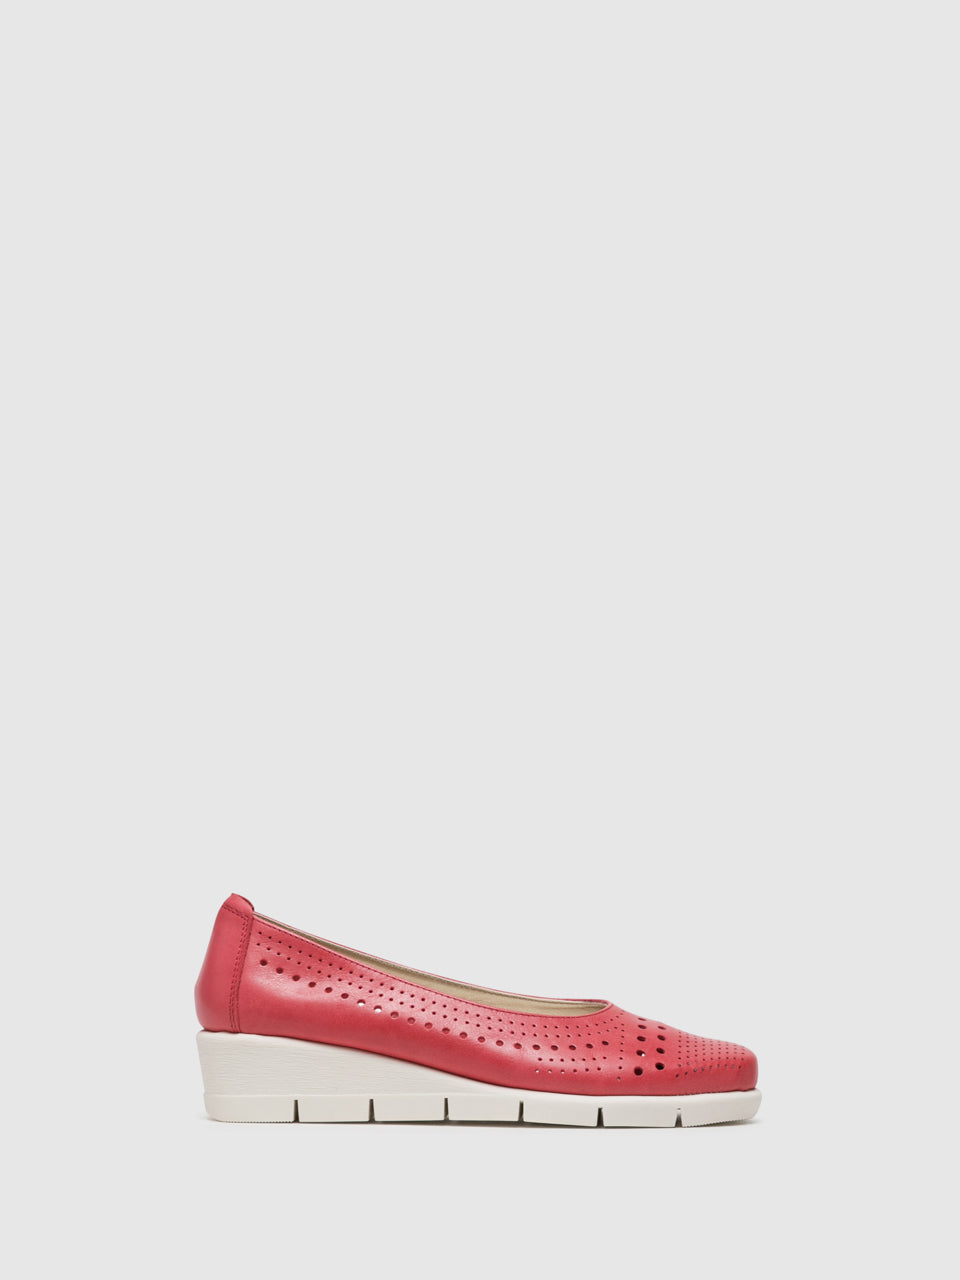 The Flexx Red Wedge Shoes